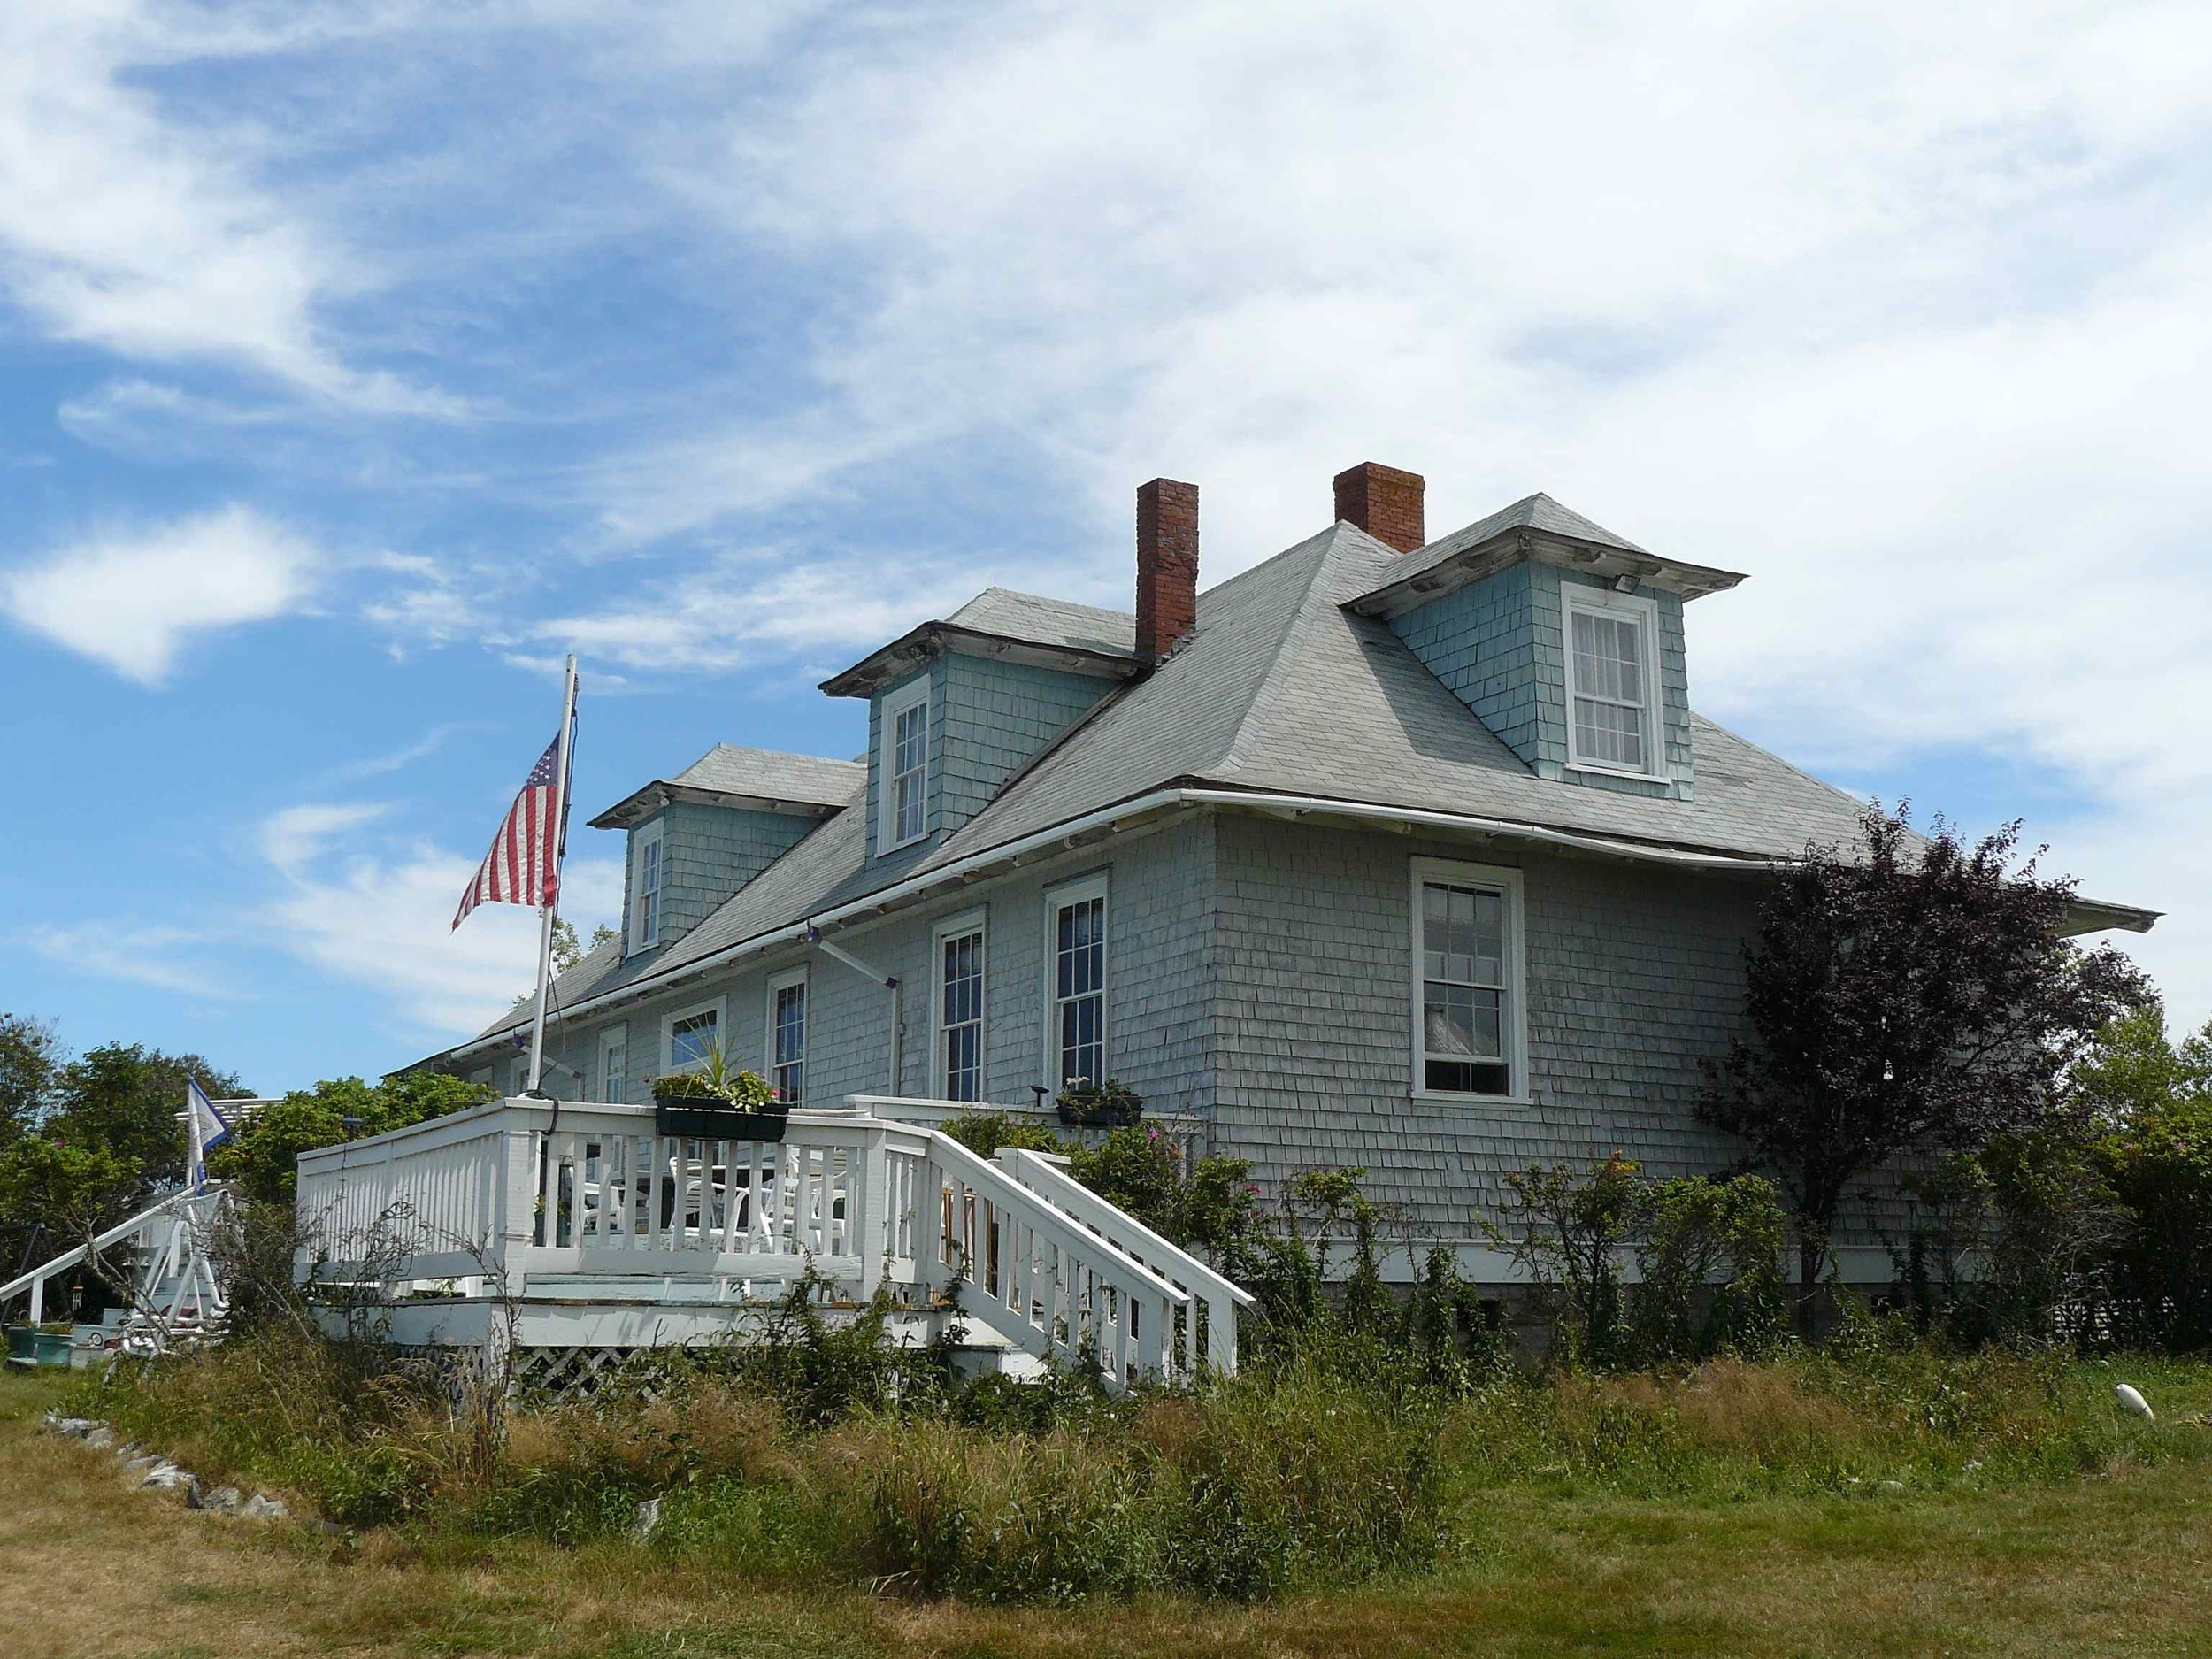 House_Island_July_2012_80_detention_barracks.JPG